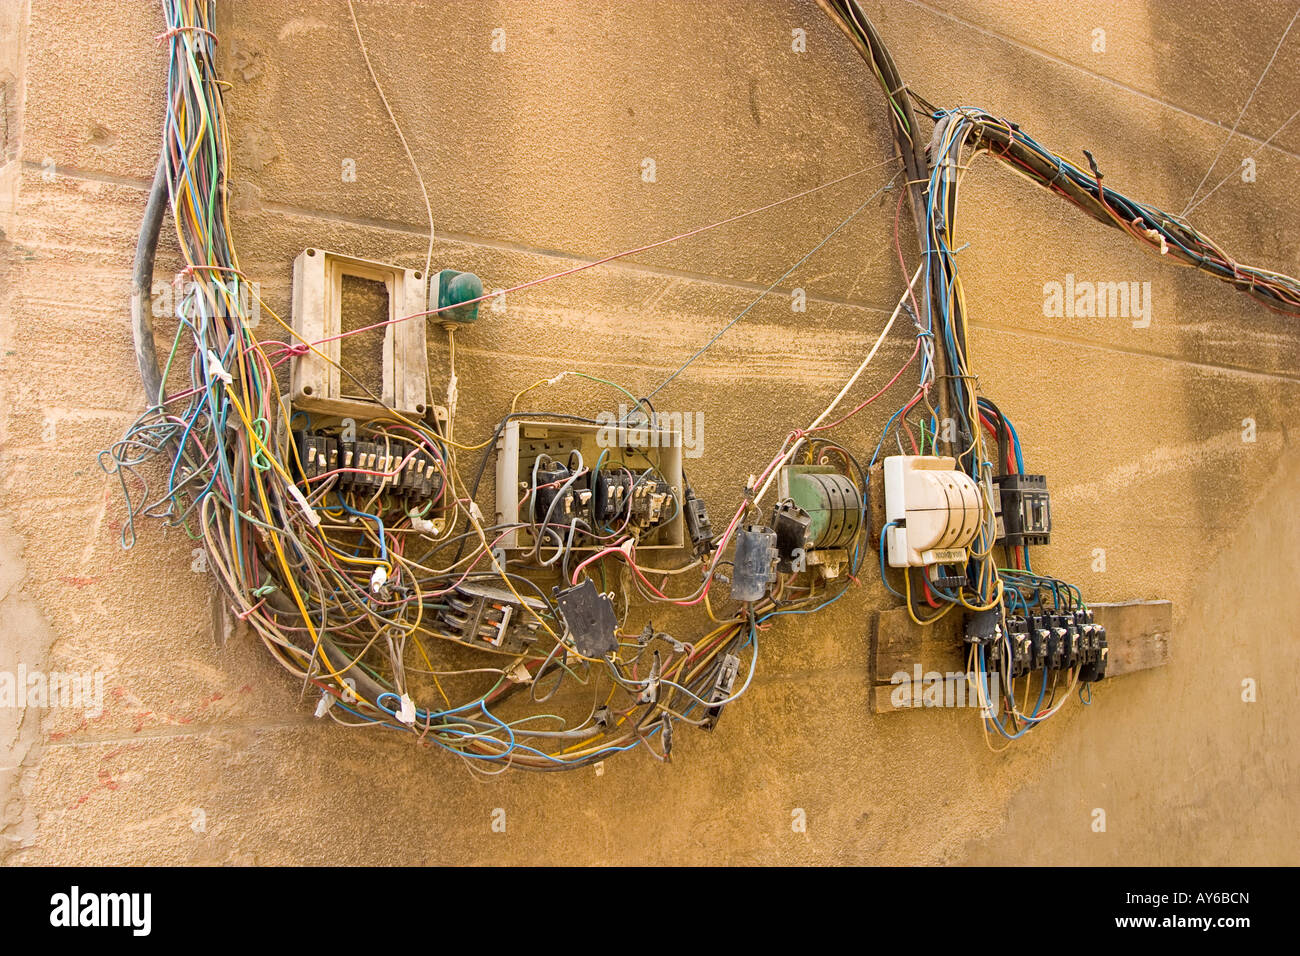 Mess Electrical Wiring Open Connection Stockfotos & Mess Electrical ...